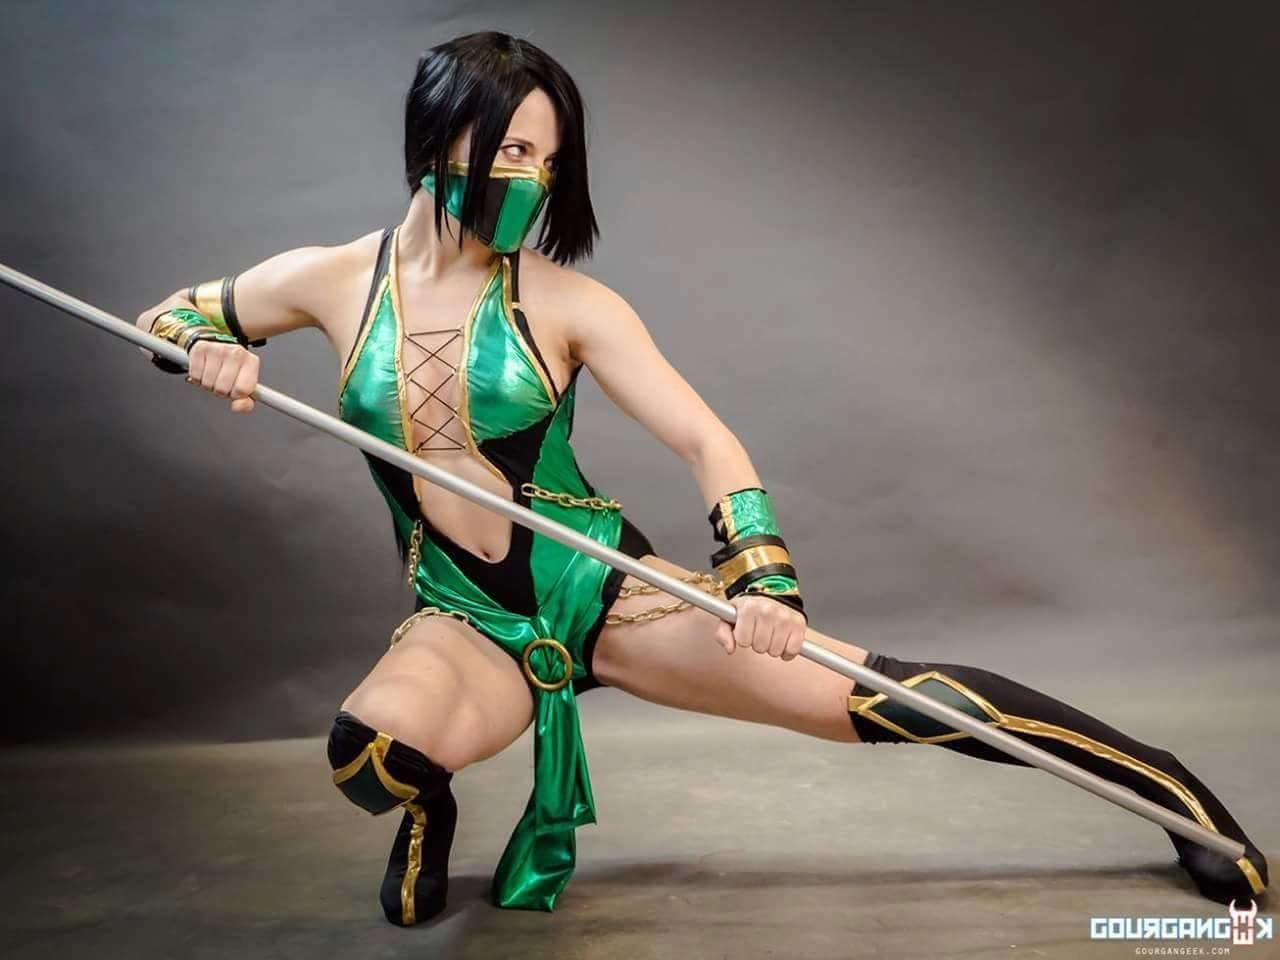 Parle-moi Cosplay #130 : Enora Cosplay